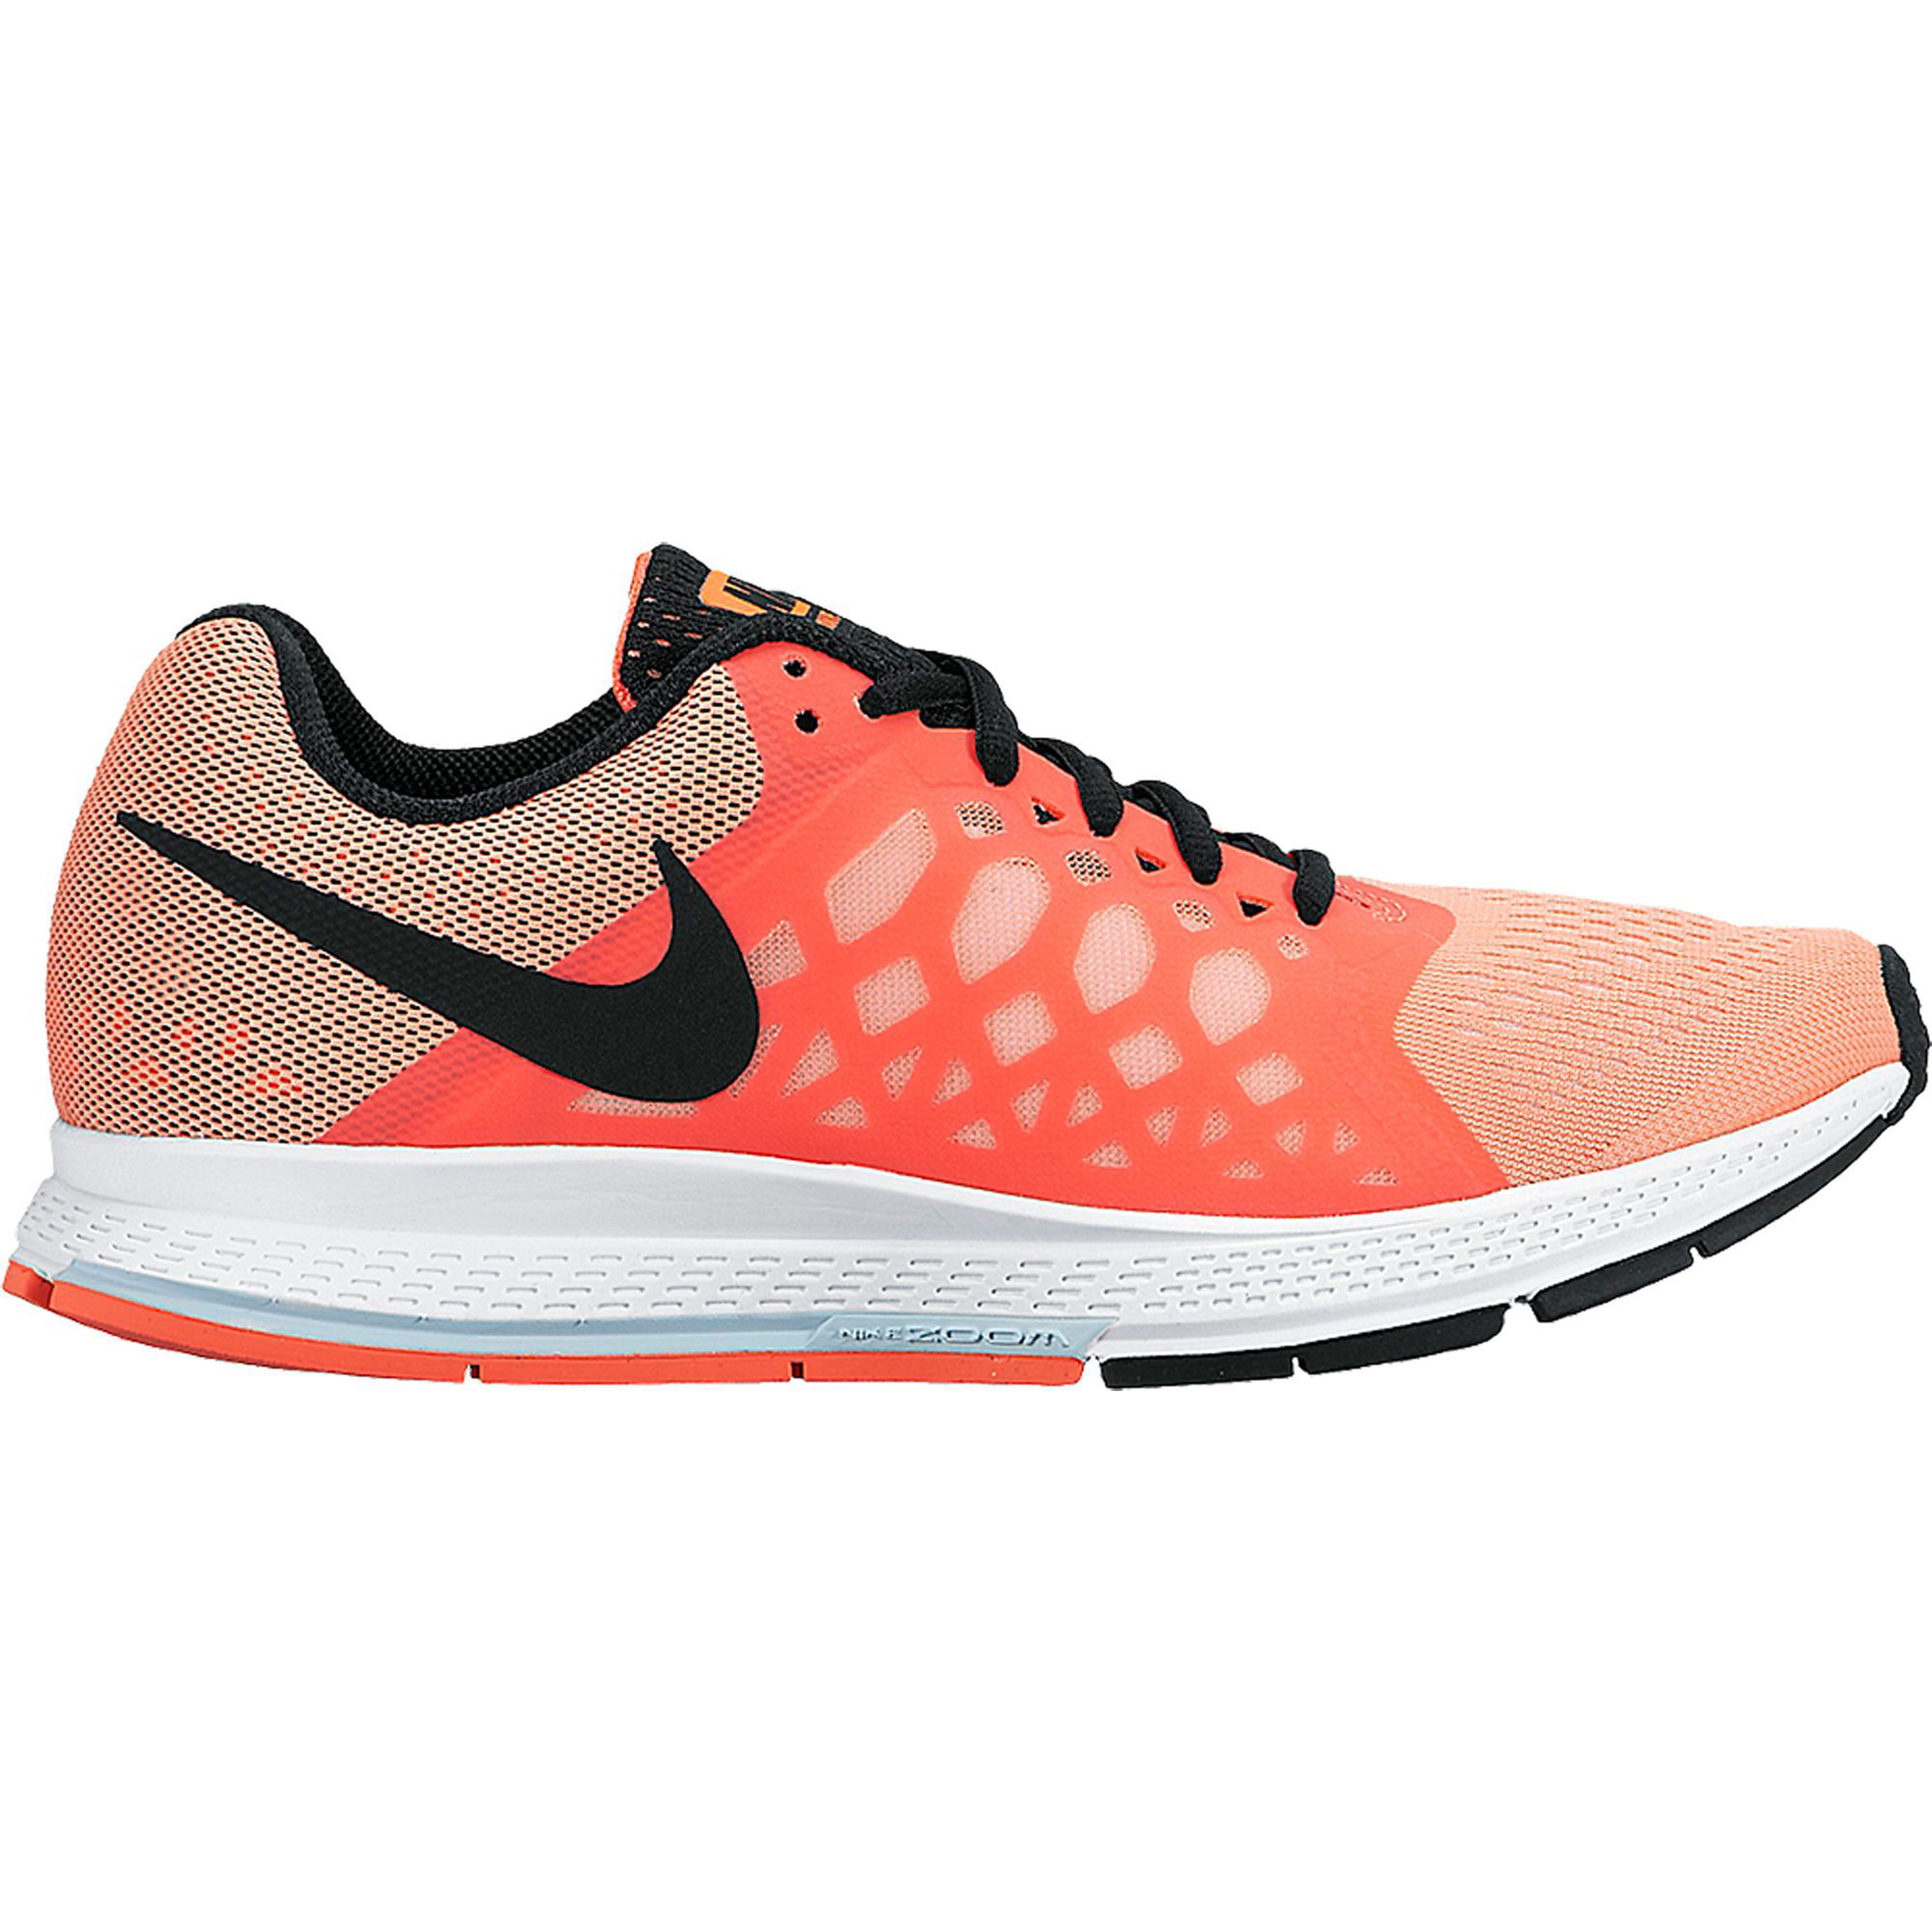 wiggle nike air zoom pegasus 31 shoes women 39 s su15. Black Bedroom Furniture Sets. Home Design Ideas